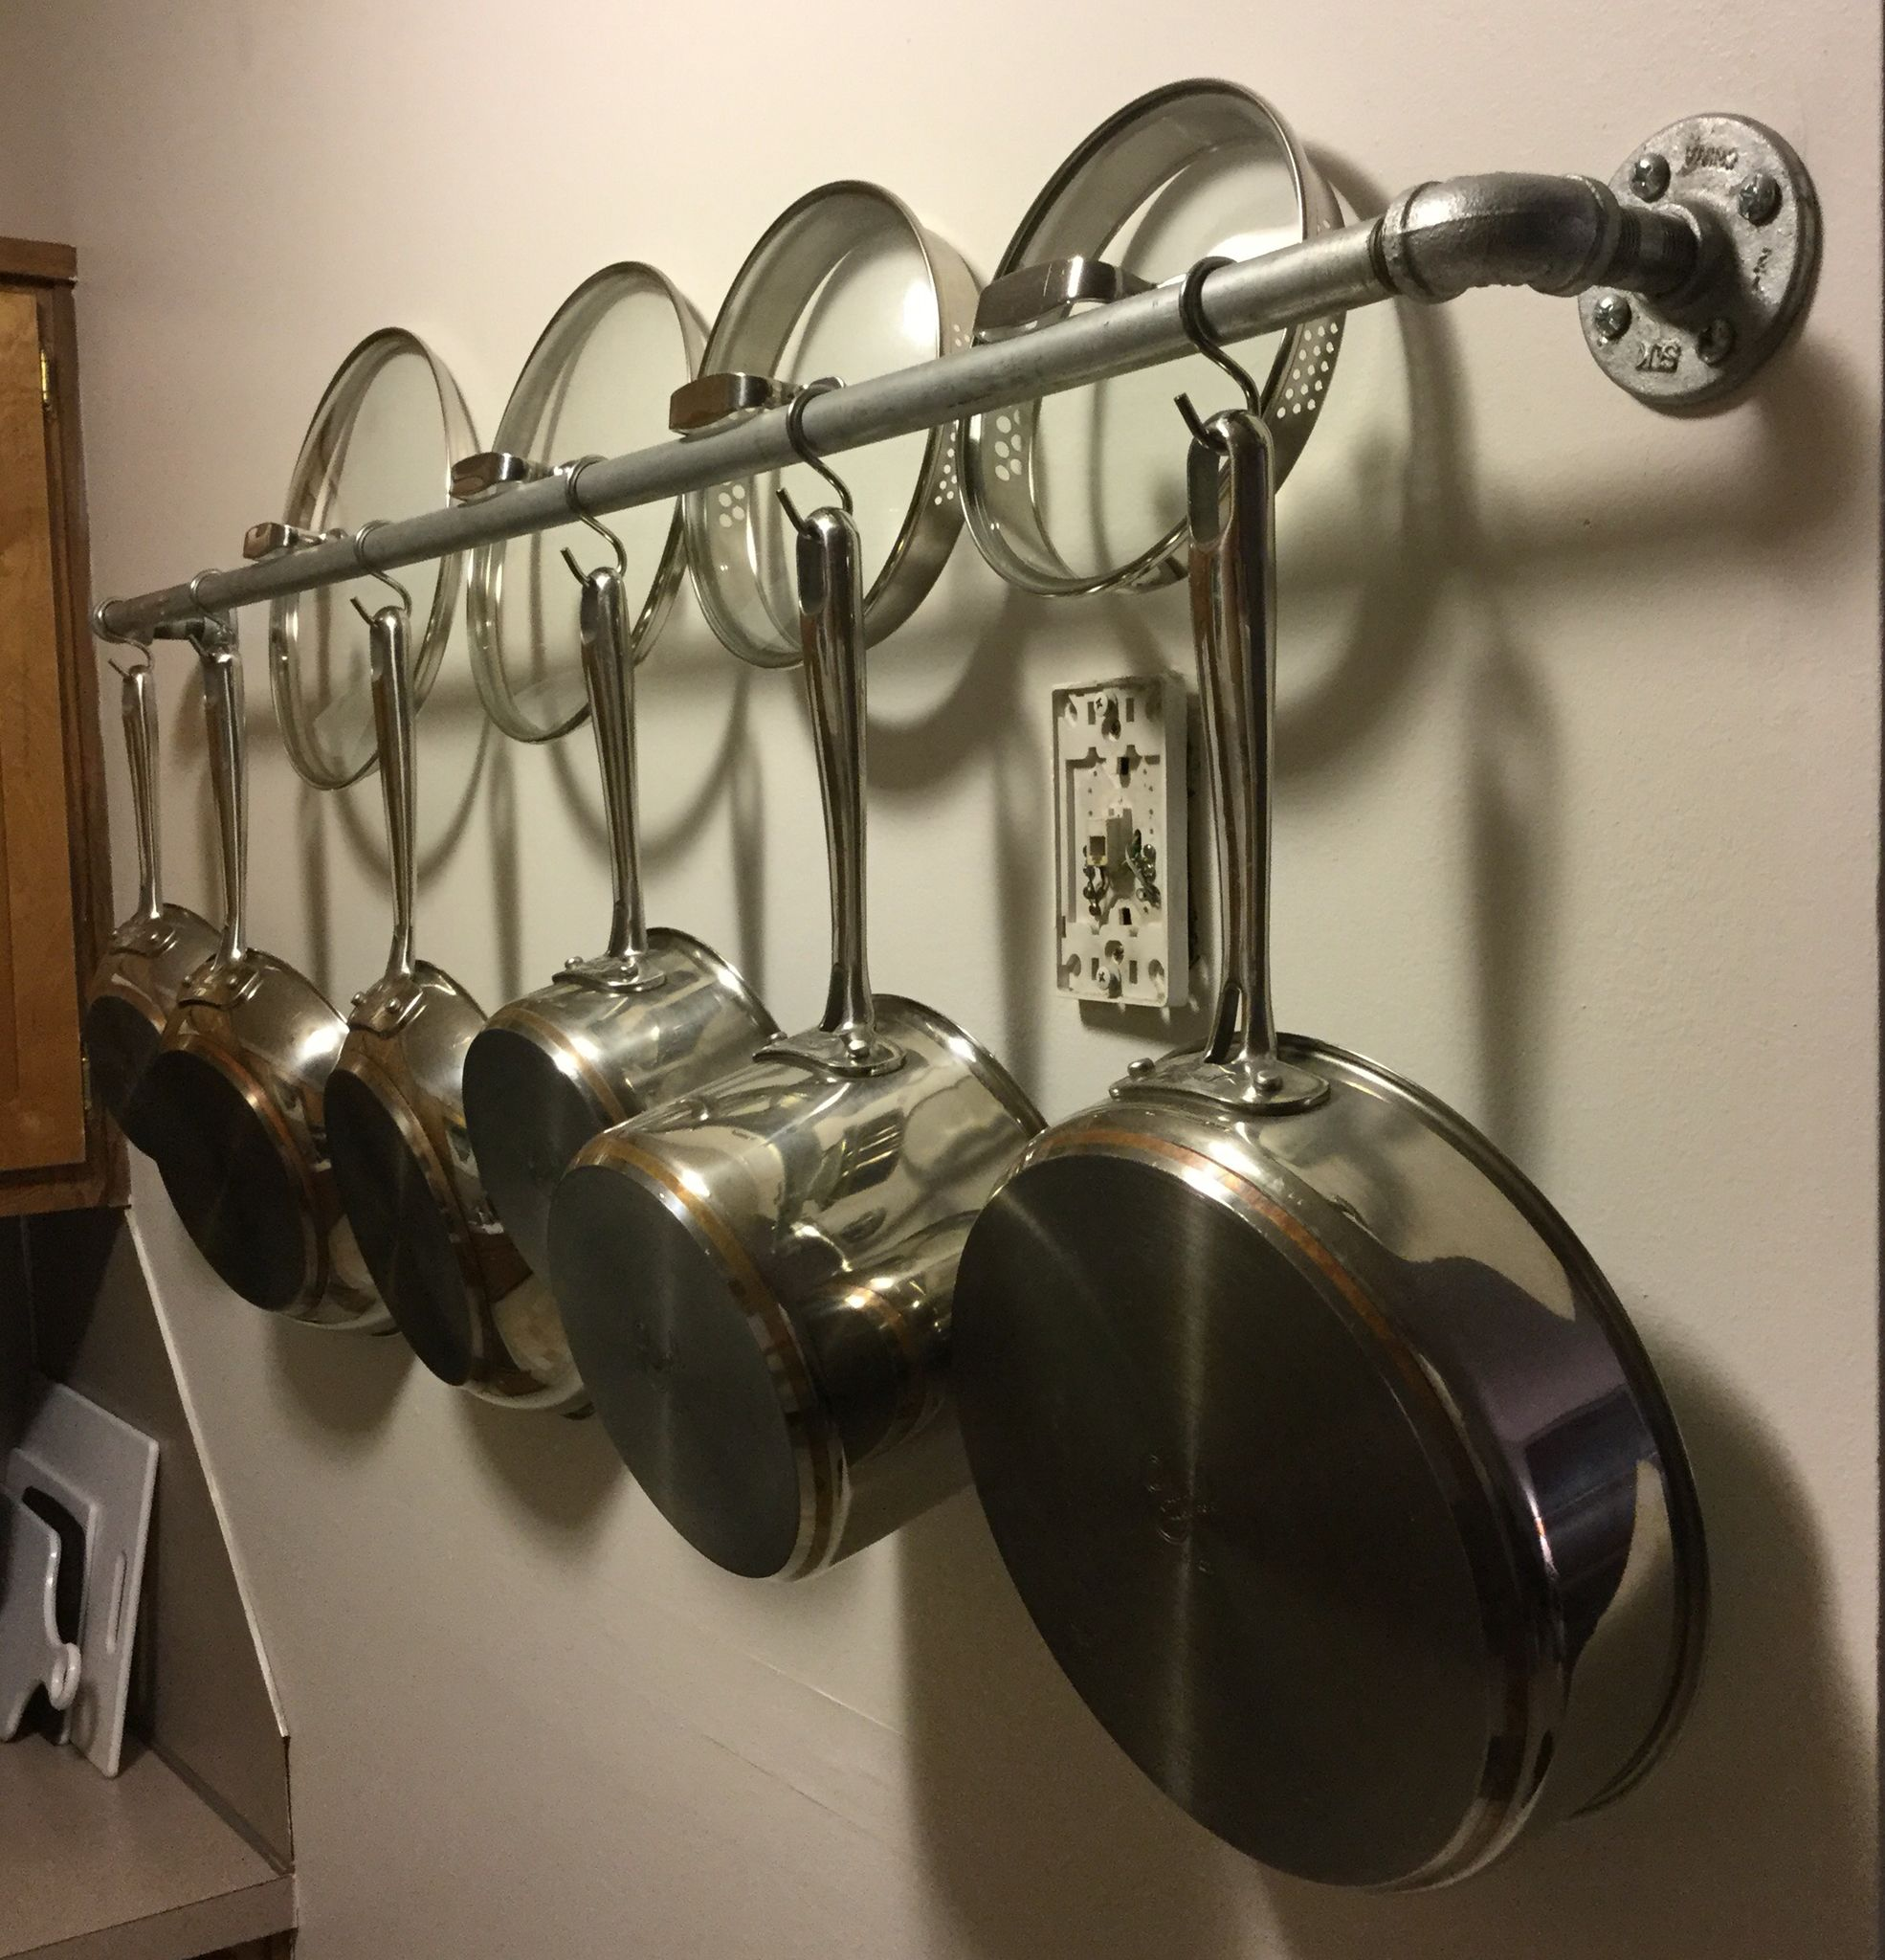 Industrial Pots and Pan Hanger Home Sweet Home